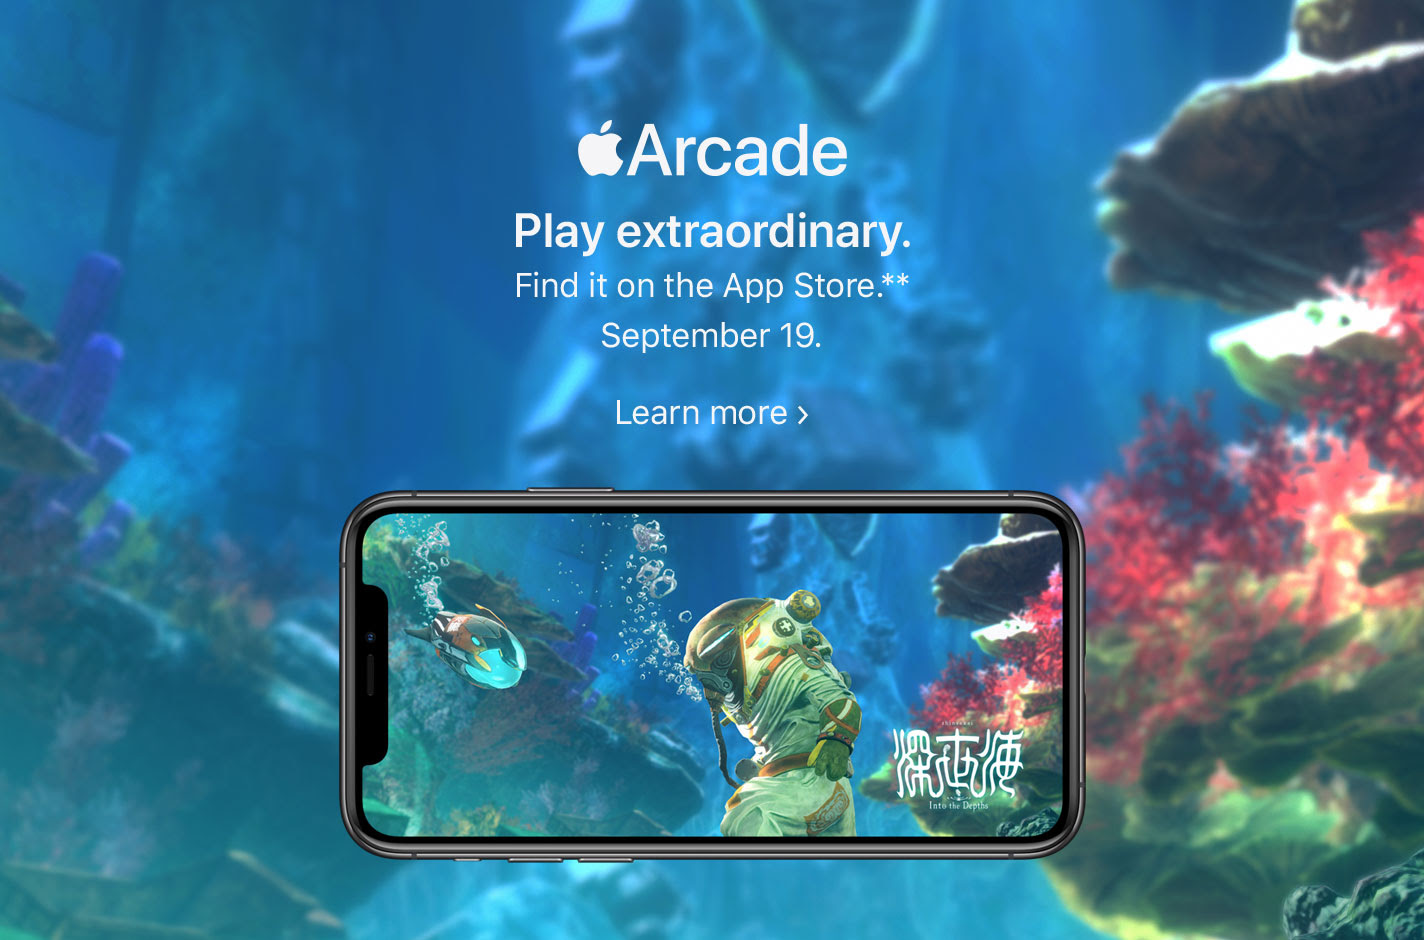 Apple Arcade. Play extraordinary. Find it on the App Store.** September 19. Learn more.